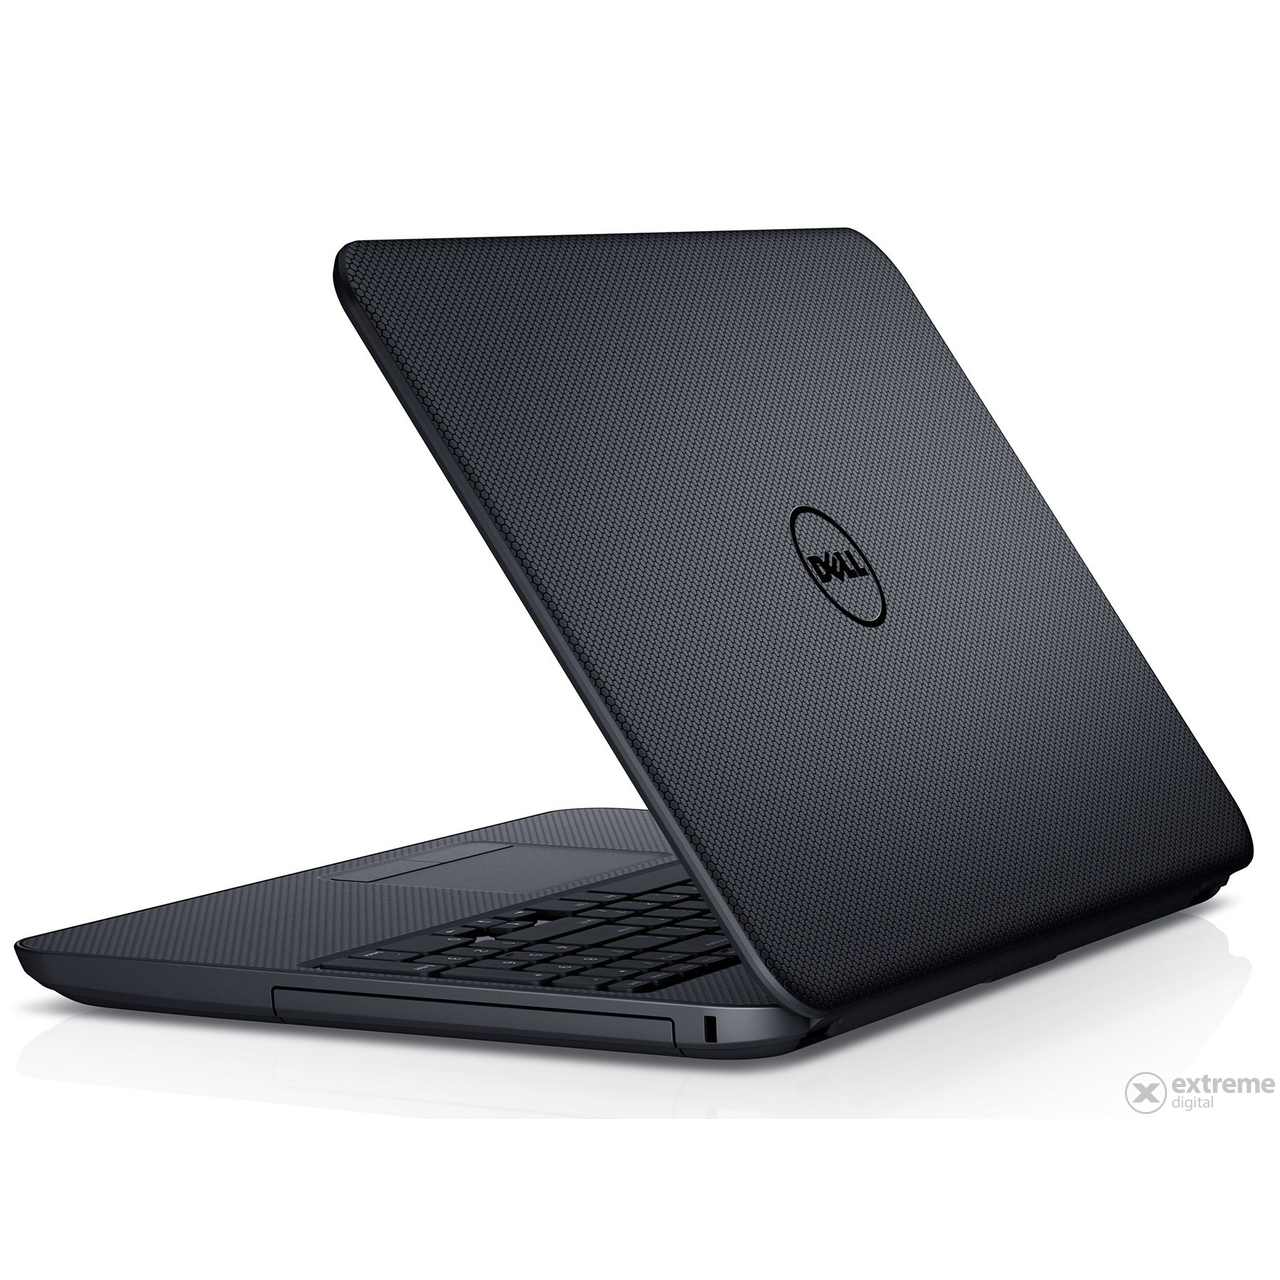 dell-inspiron-3541-168905-notebook-windows-8-1-fekete_c52b52d3.jpg